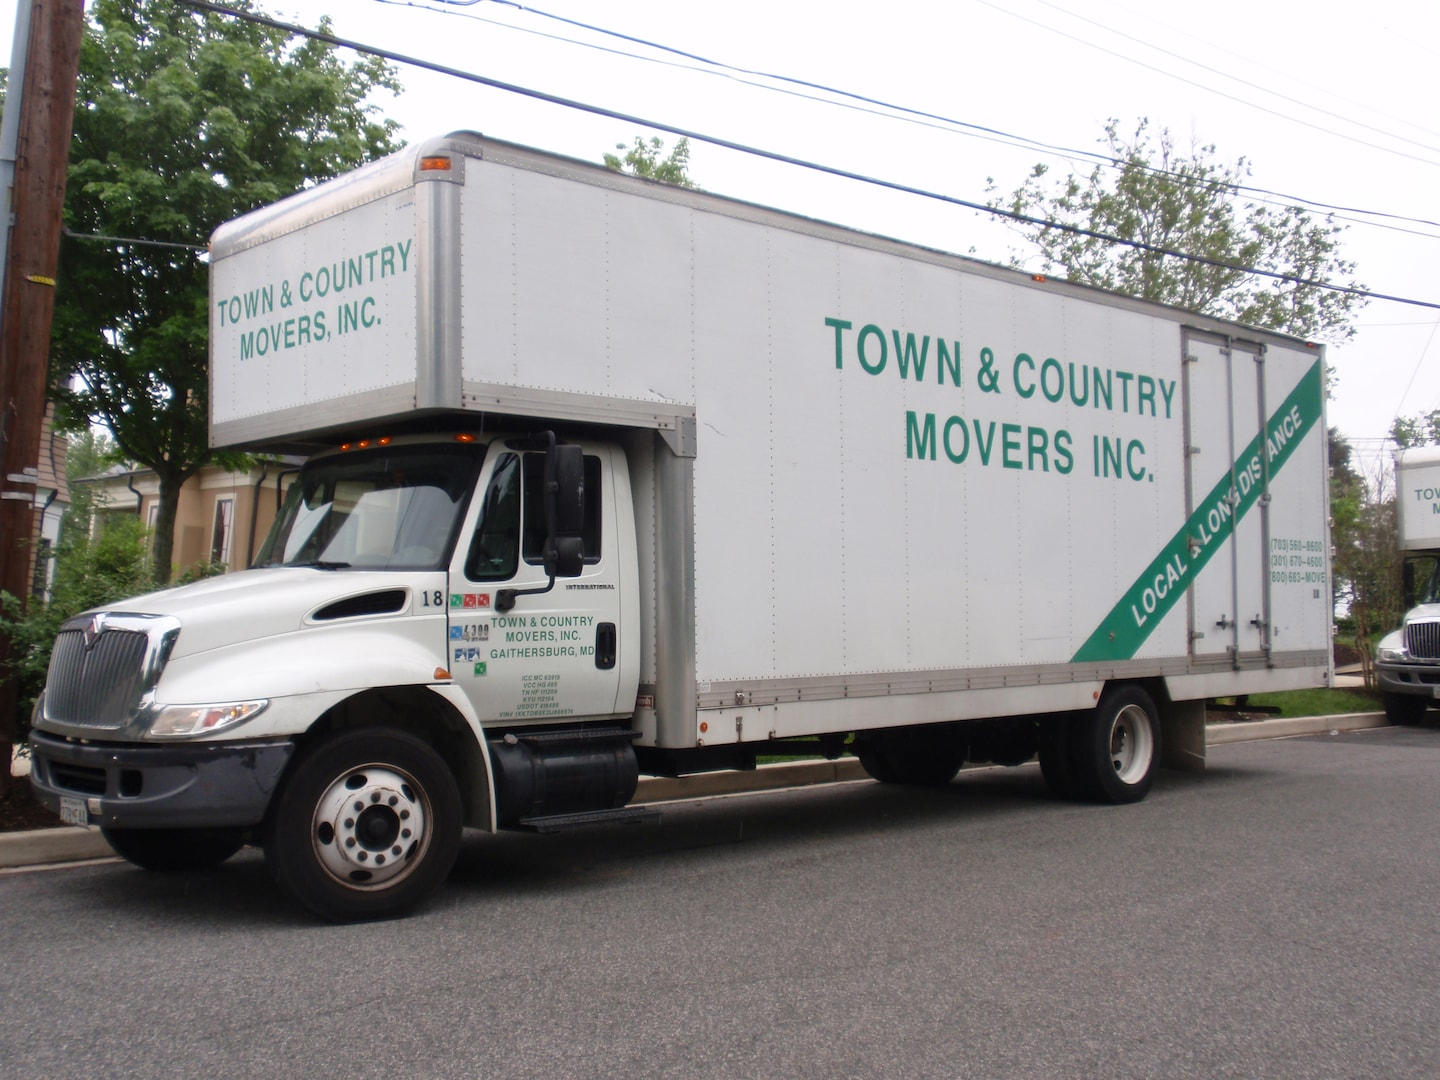 Town & Country Movers Inc